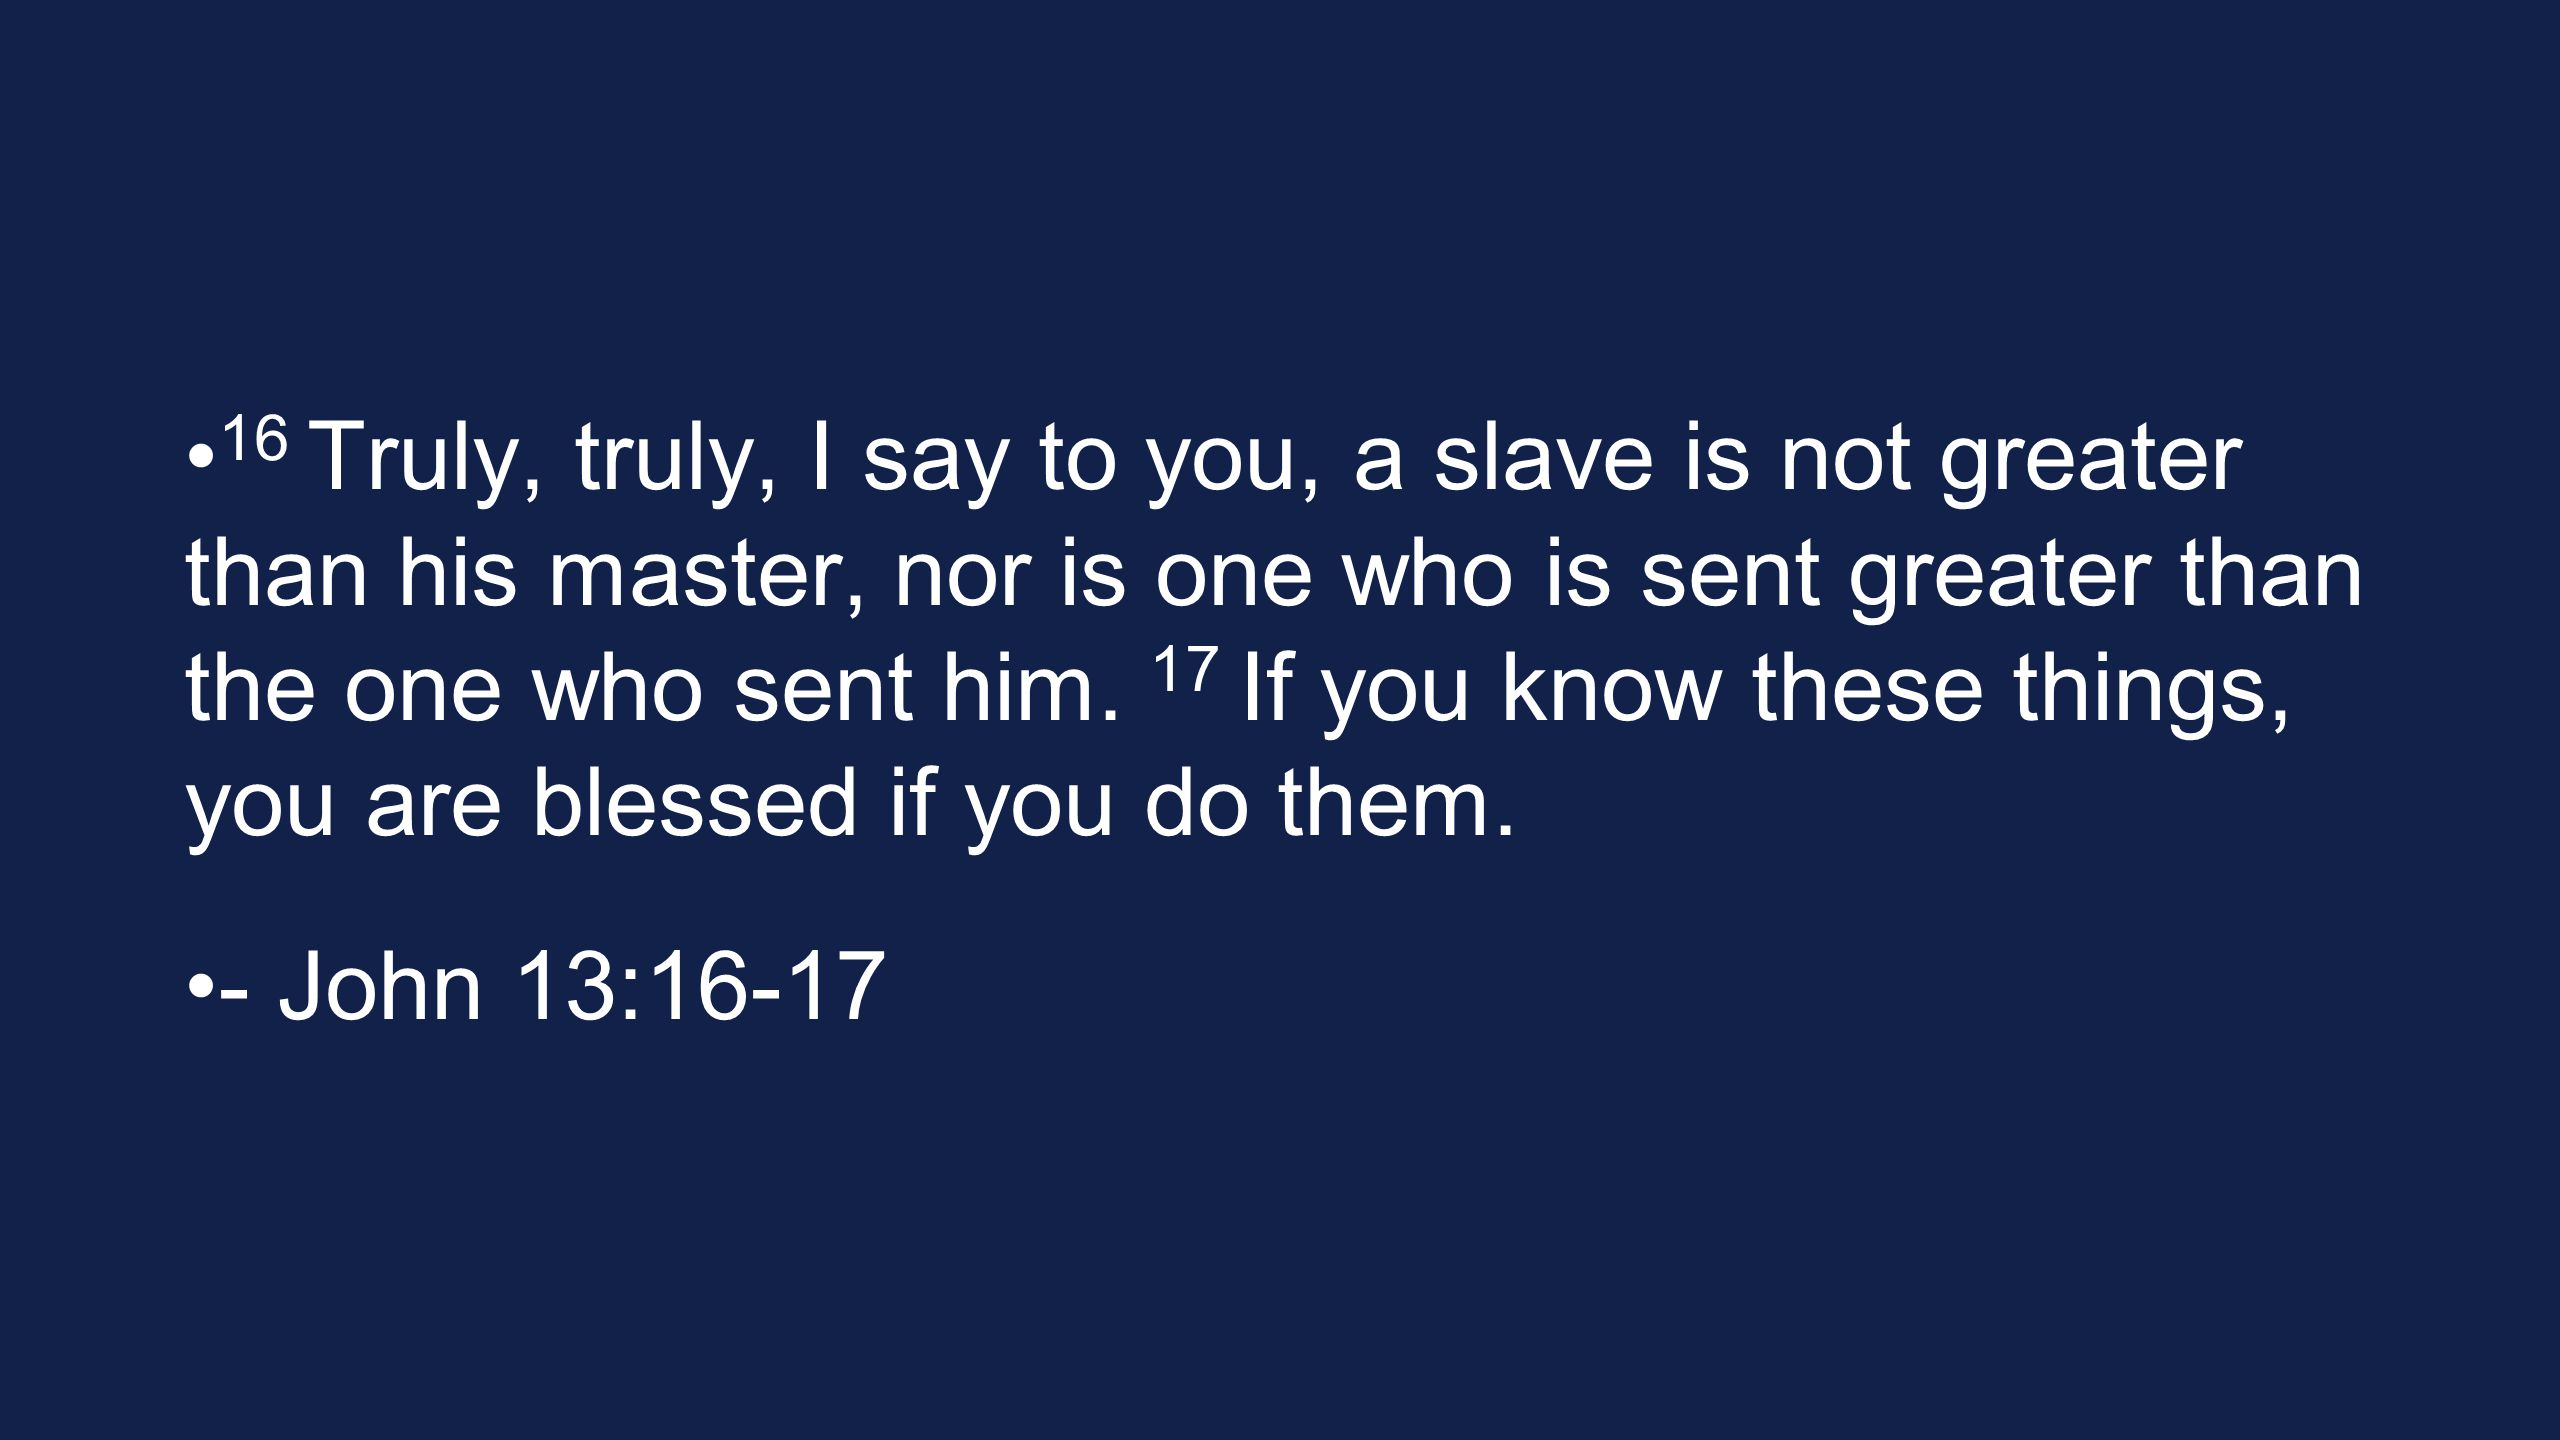 16 Truly, truly, I say to you, a slave is not greater than his master, nor is one who is sent greater than the one who sent him. 17 If you know these